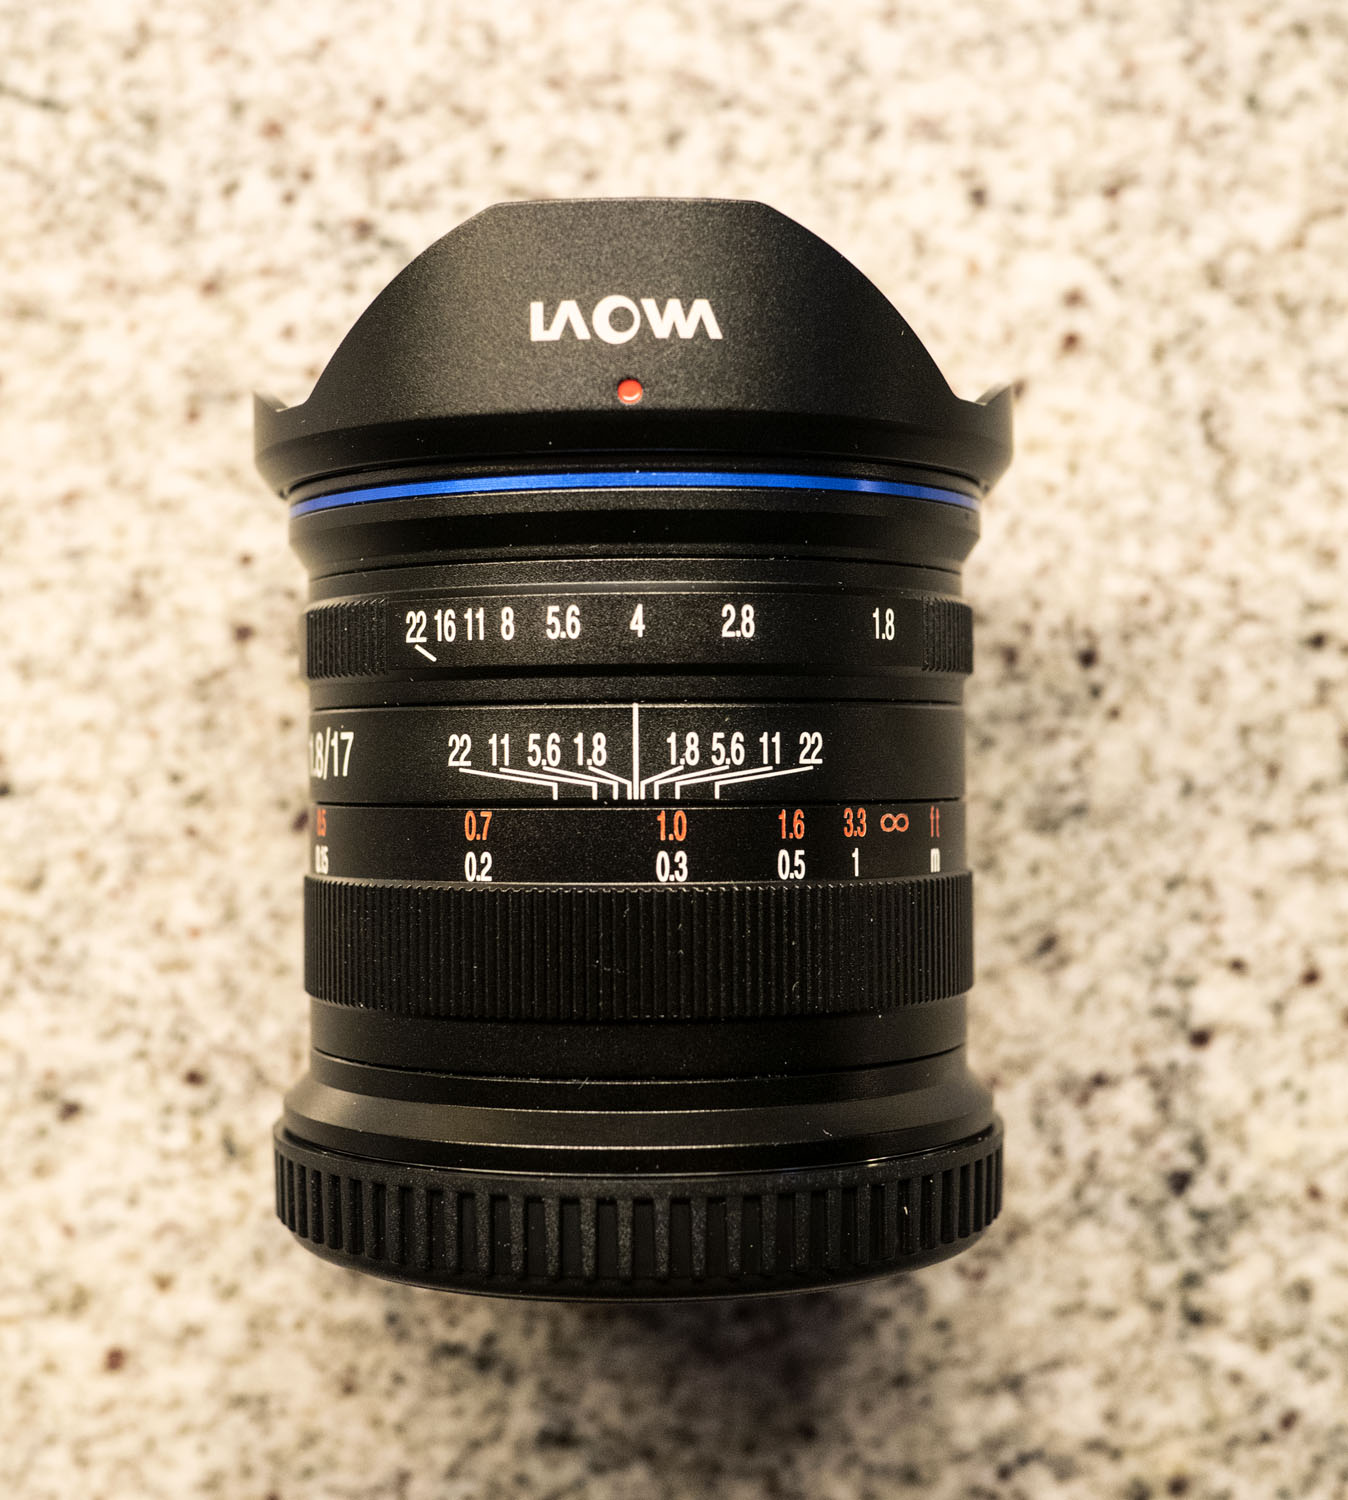 Image: The Laowa 17mm lens is specifically designed for micro-four-thirds cameras